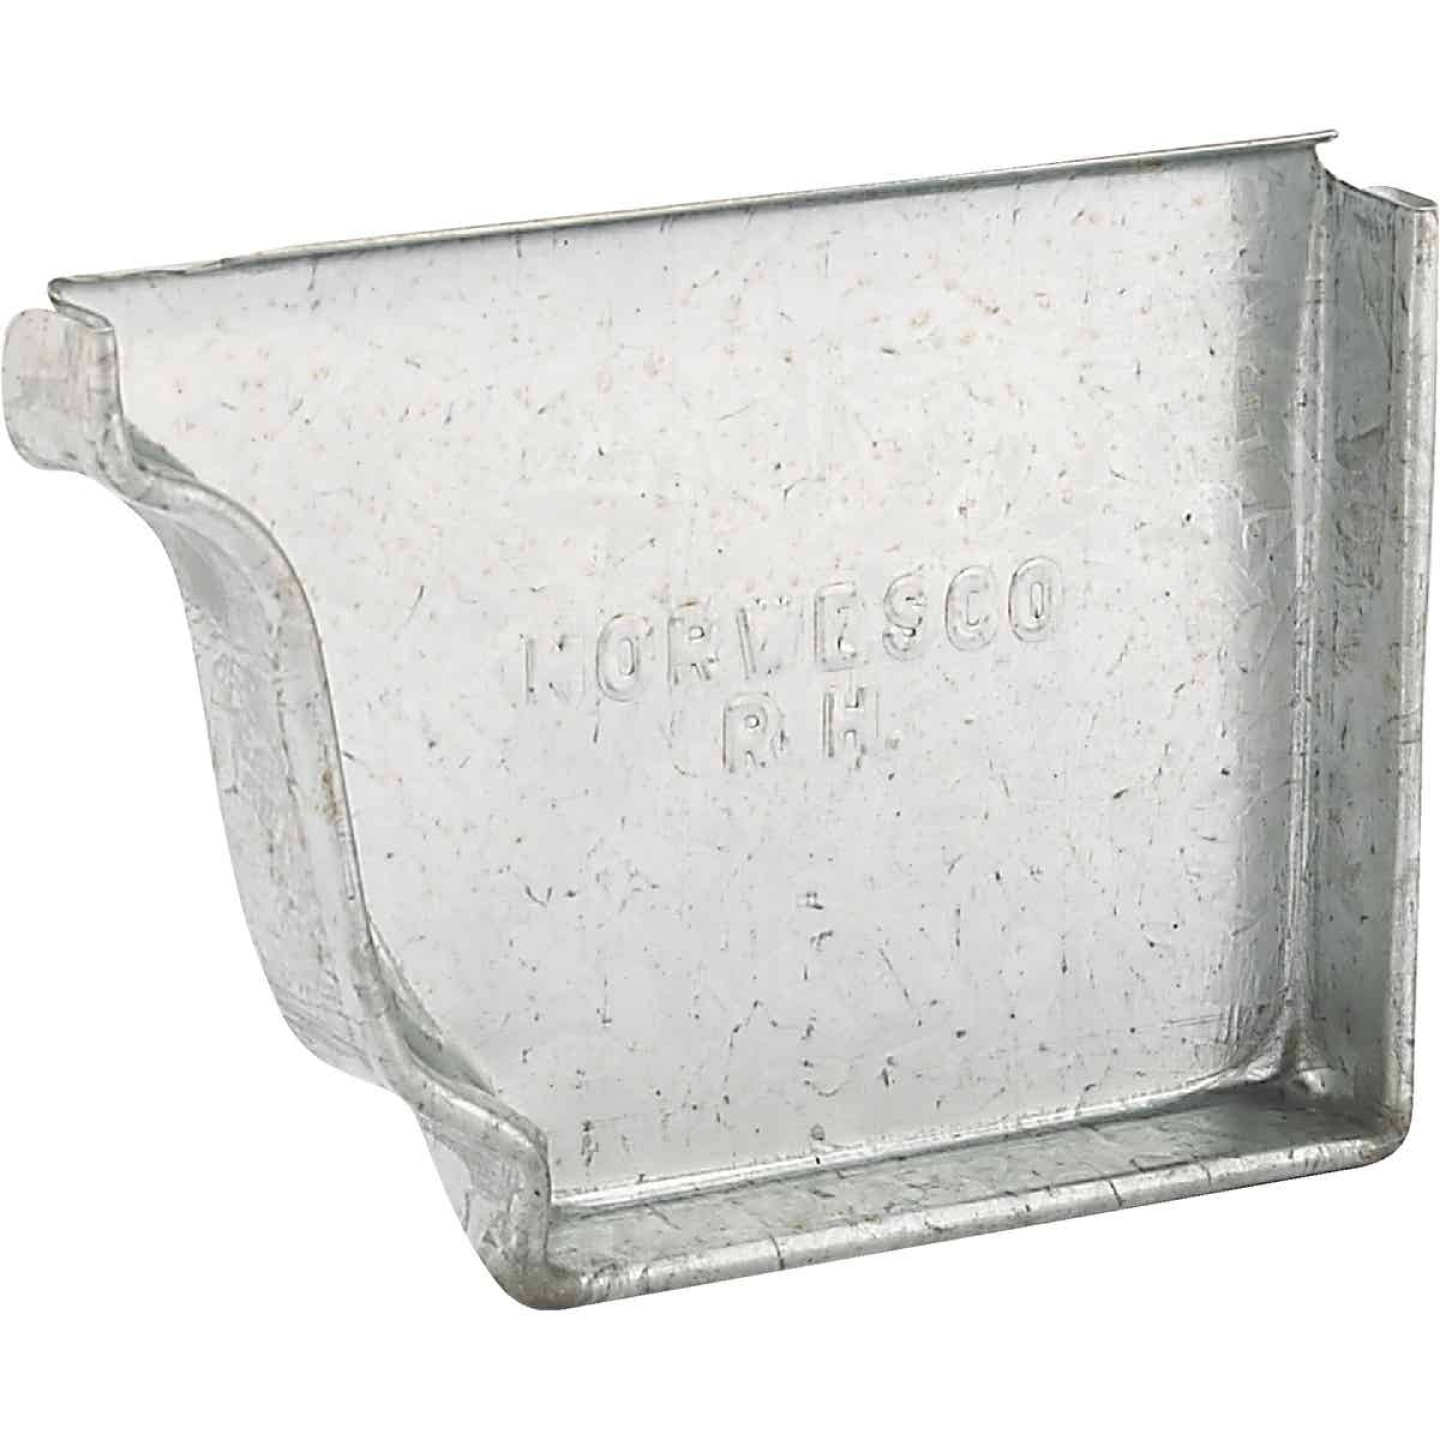 NorWesco 4 In. Galvanized Right Gutter End Cap Image 1